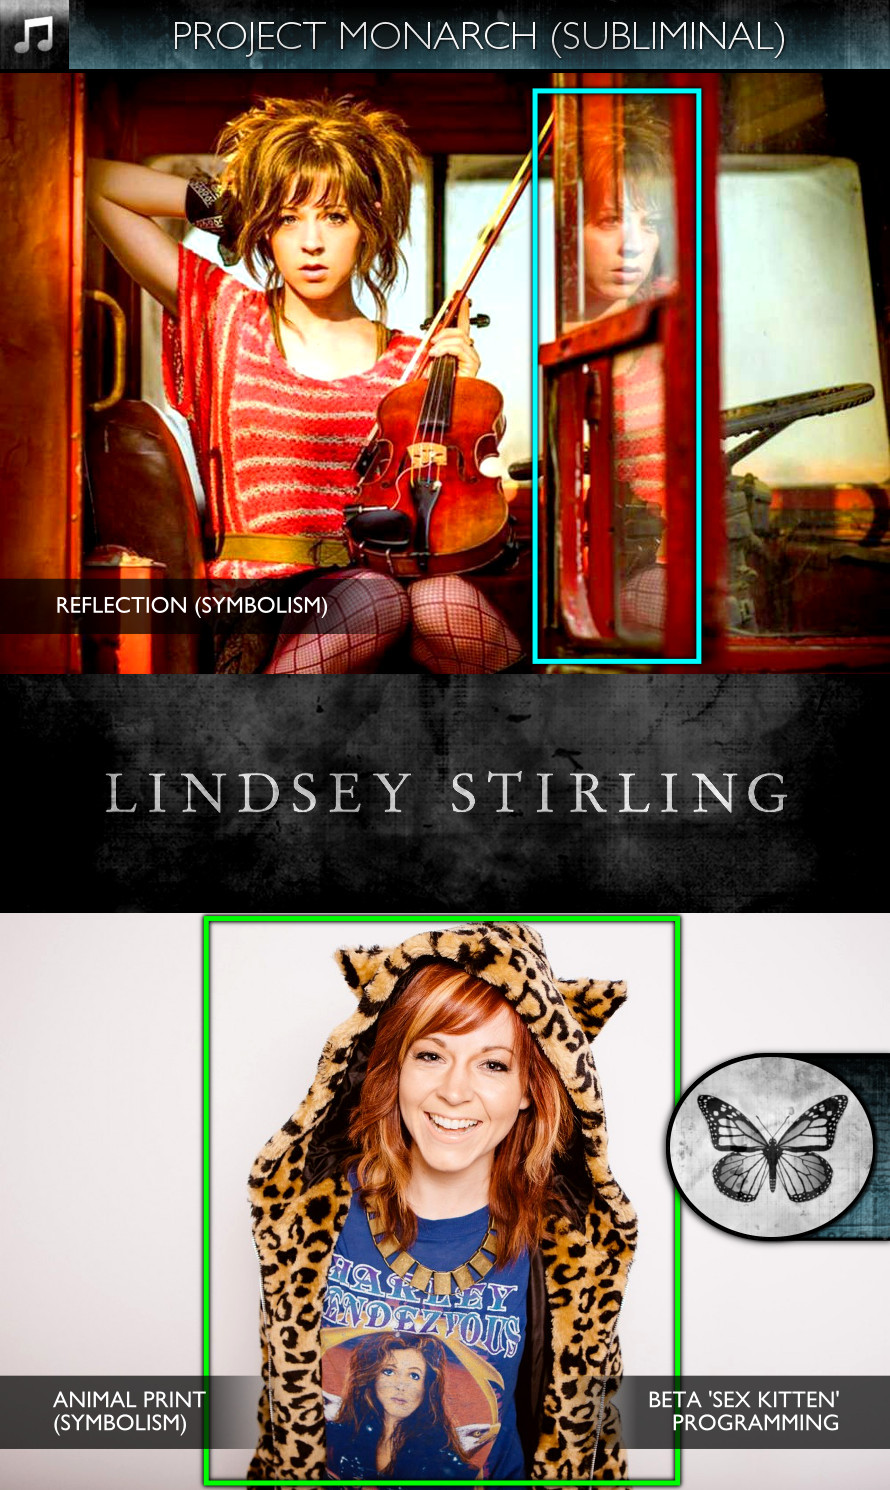 Lindsey Stirling - Promo Photos - Project Monarch - Subliminal